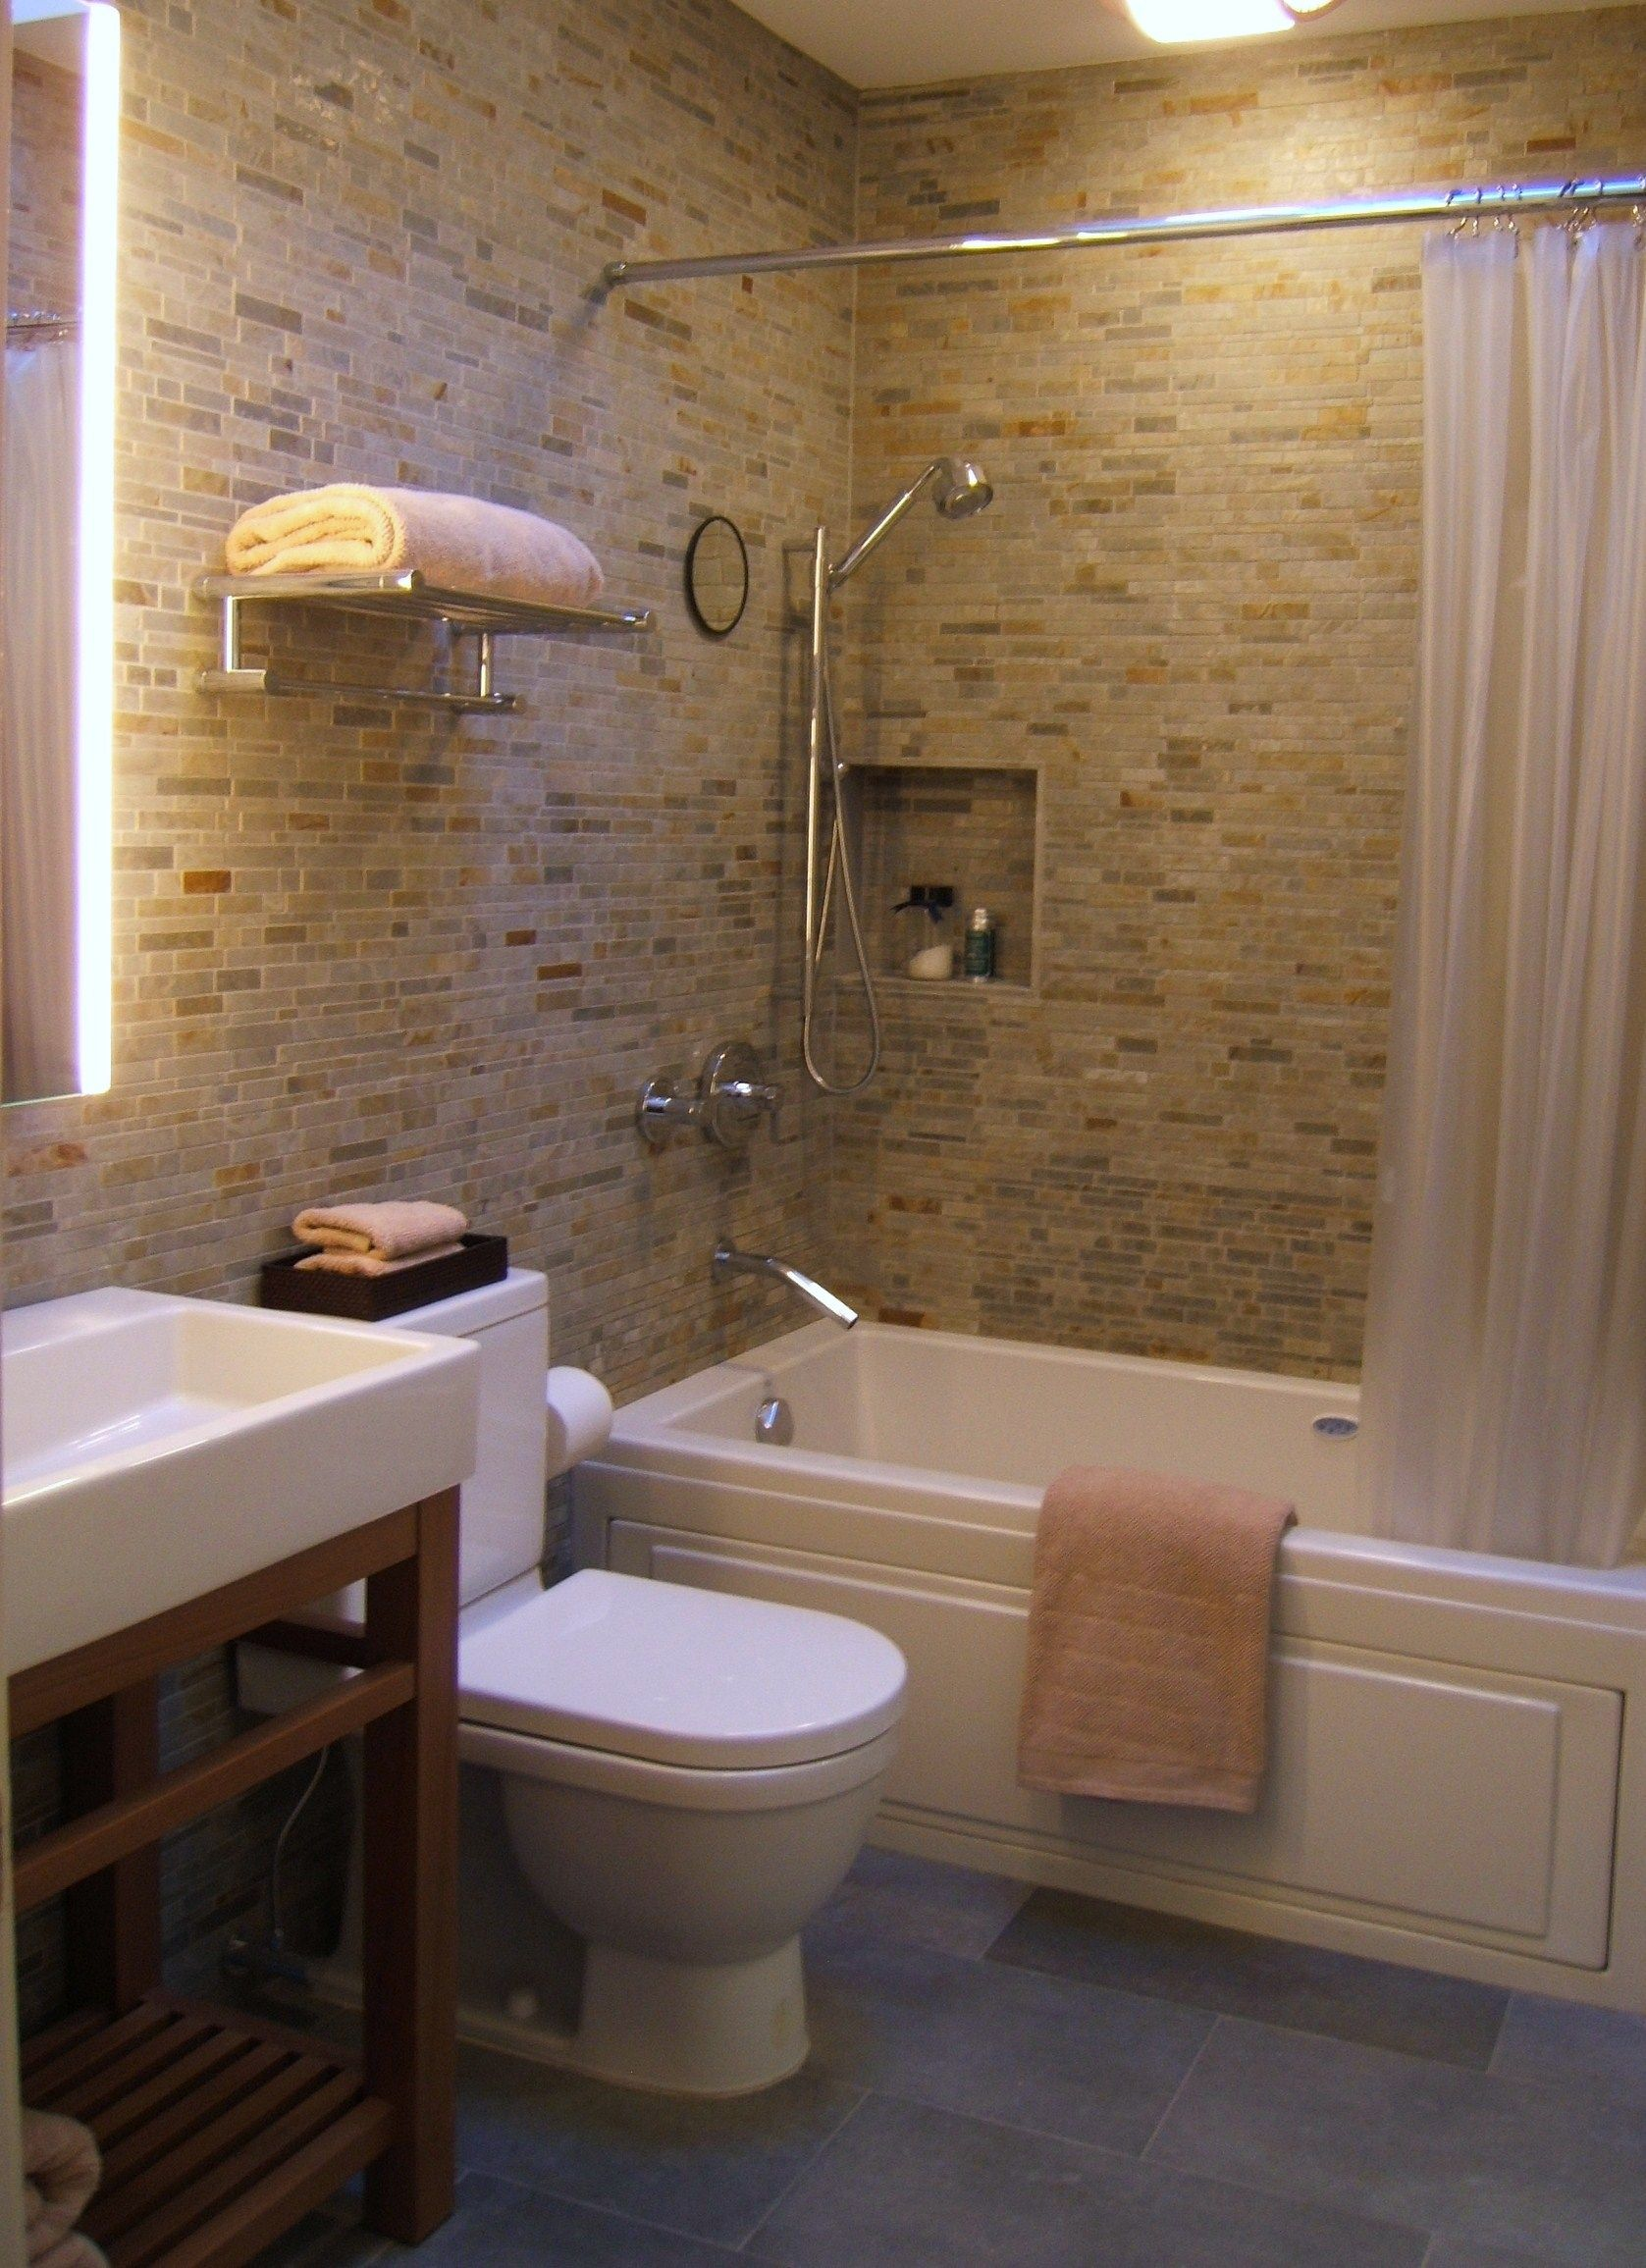 Small bathroom designs south africa small bath for Small restroom remodel ideas